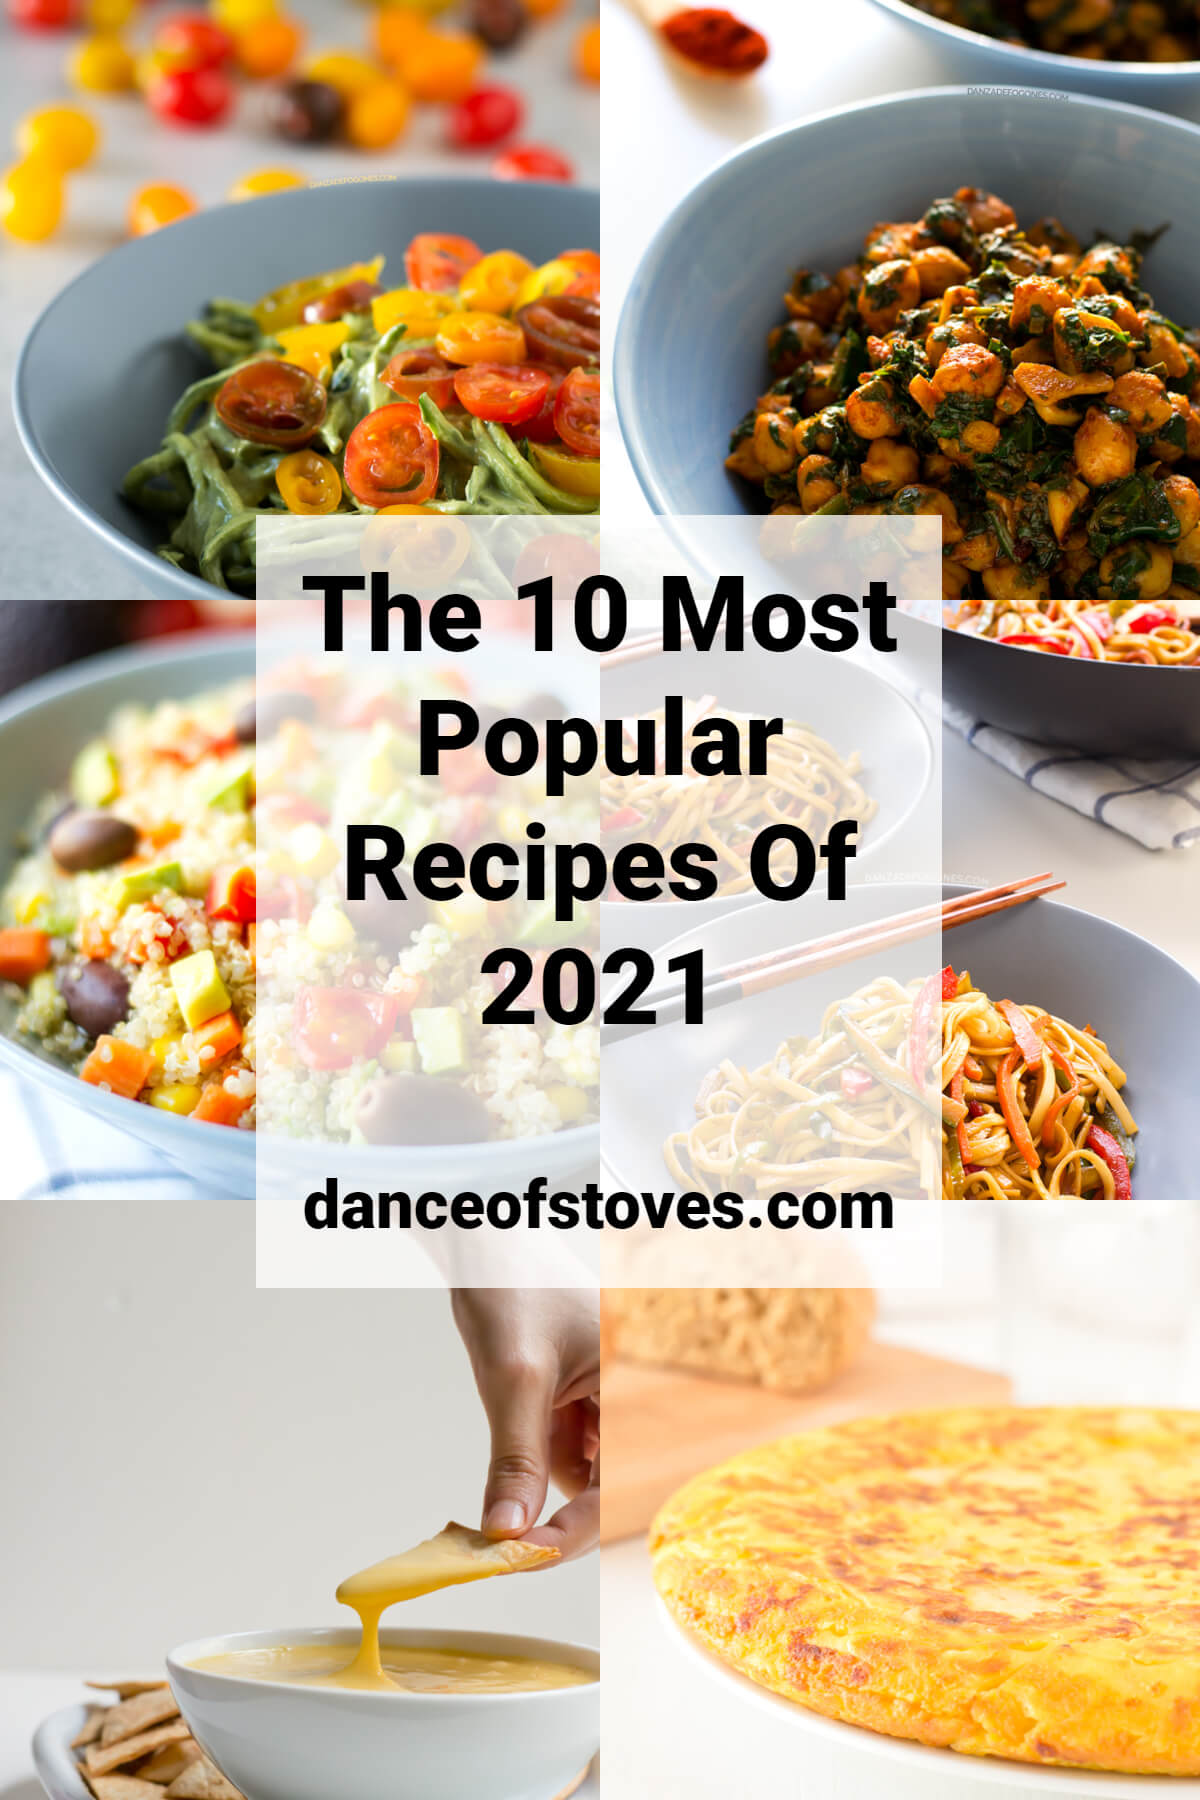 The 10 Most Popular Recipes of 2021